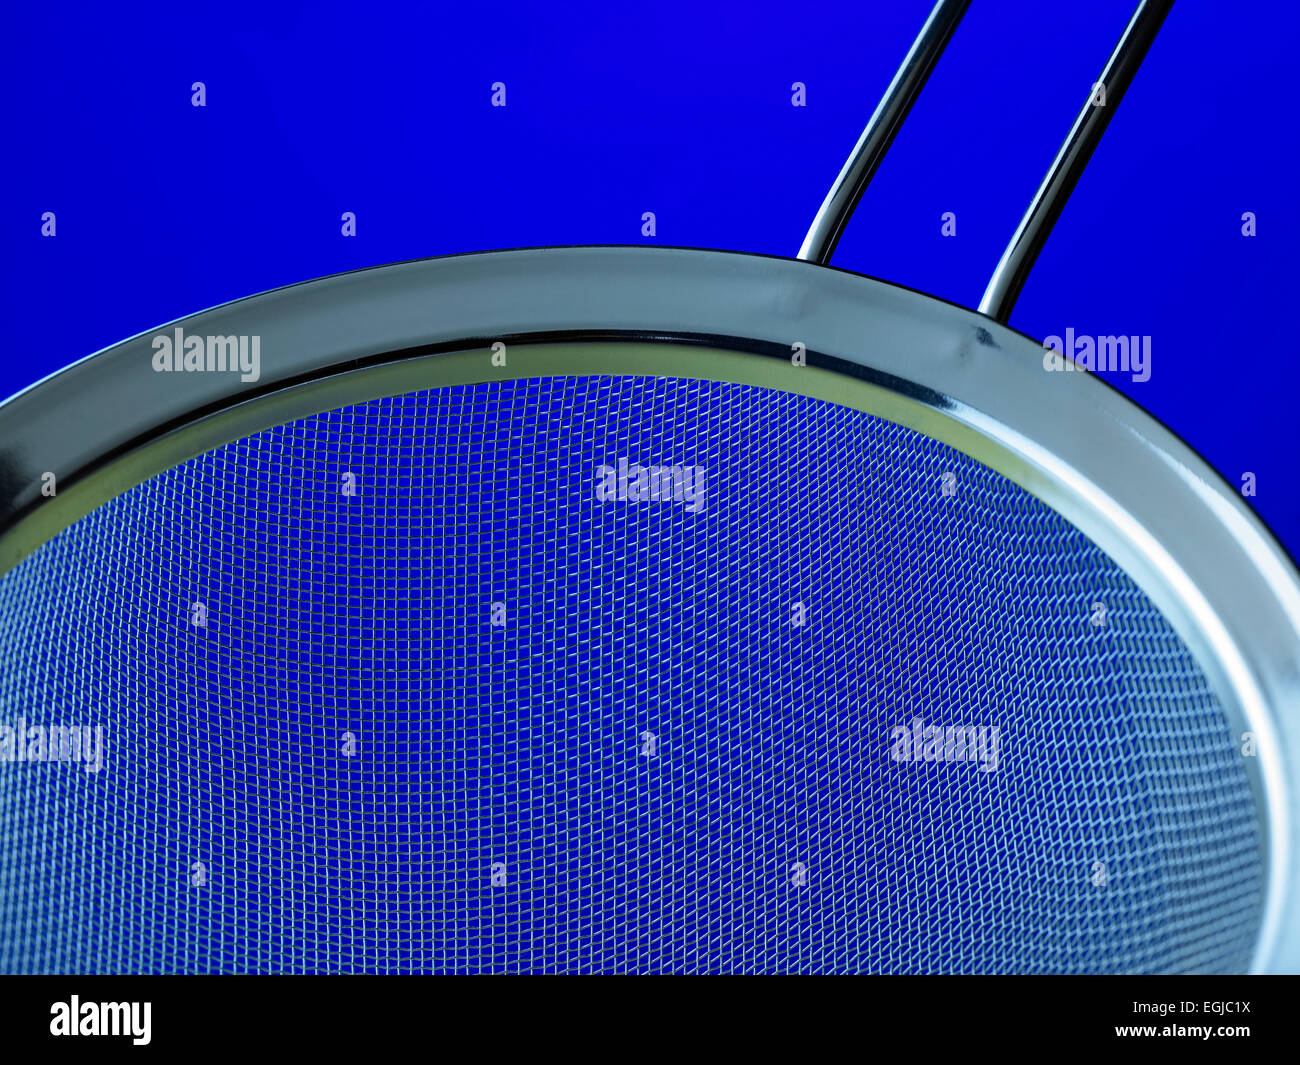 kitchen equipment: sieve - Stock Image